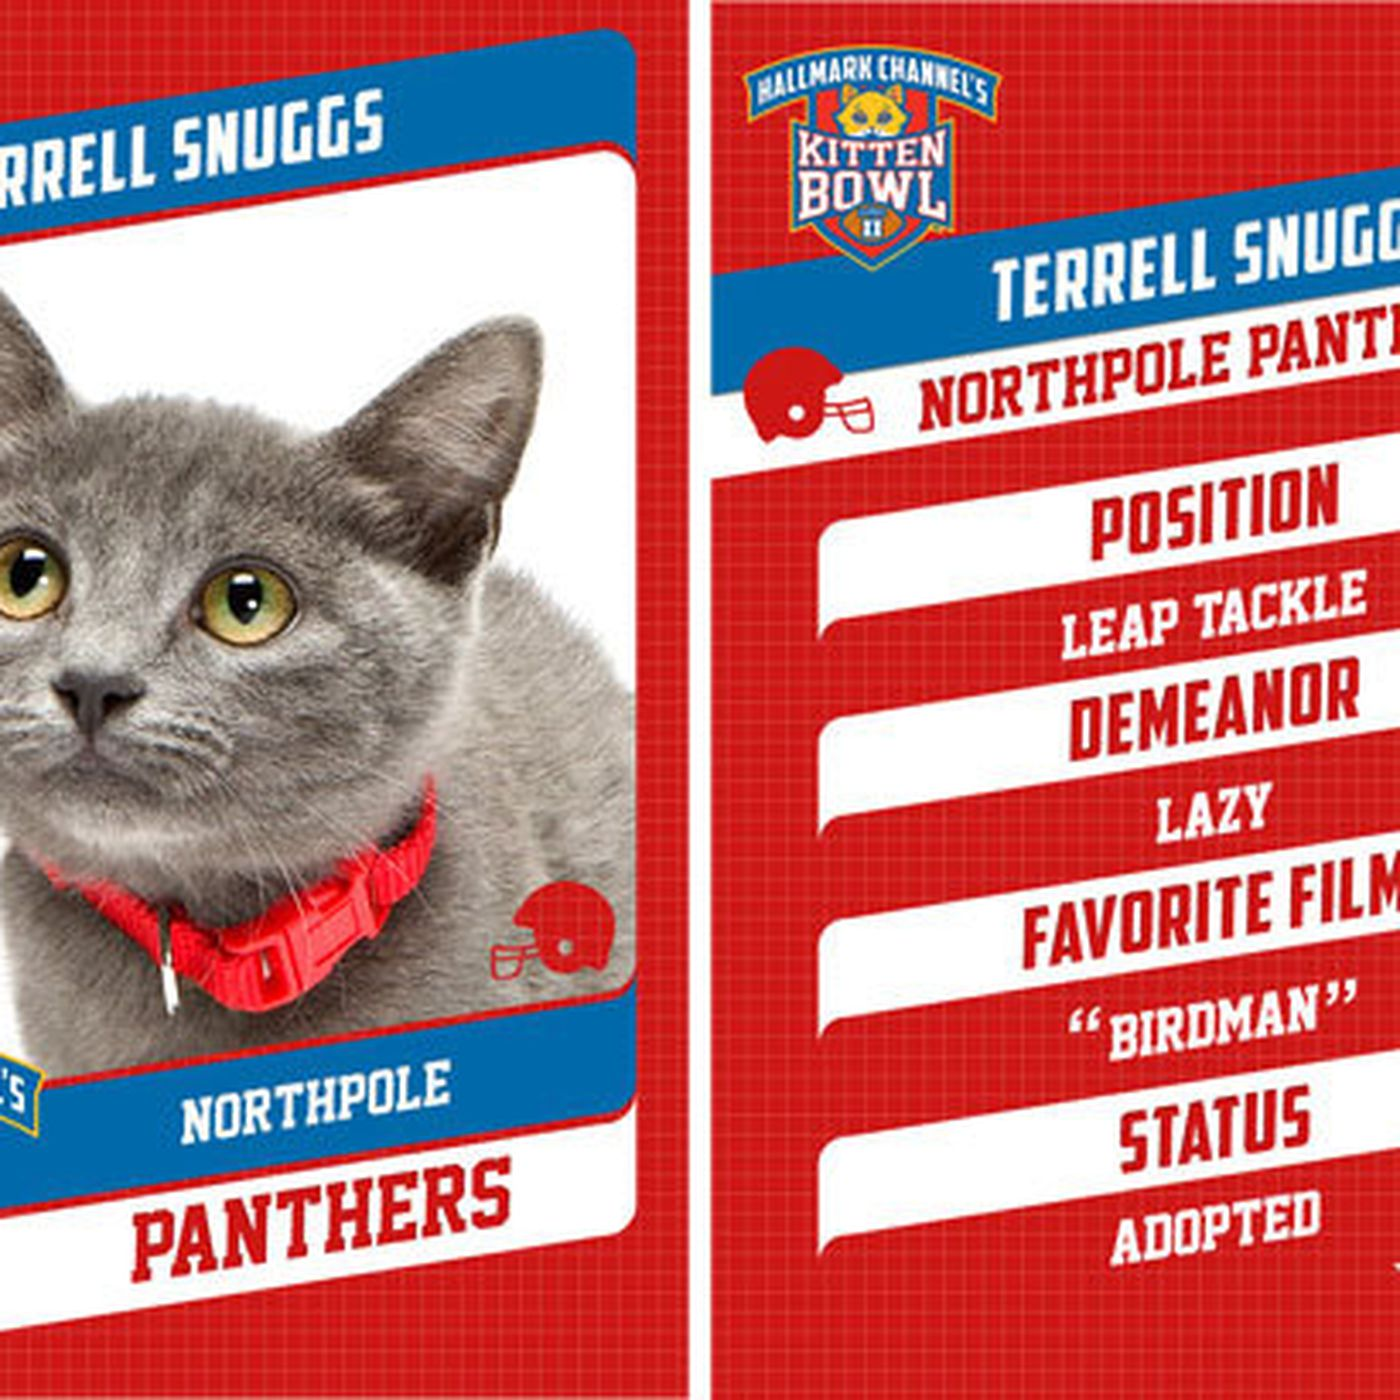 The Kitten Bowl S Kittens Are Named After Nfl Players Sbnation Com